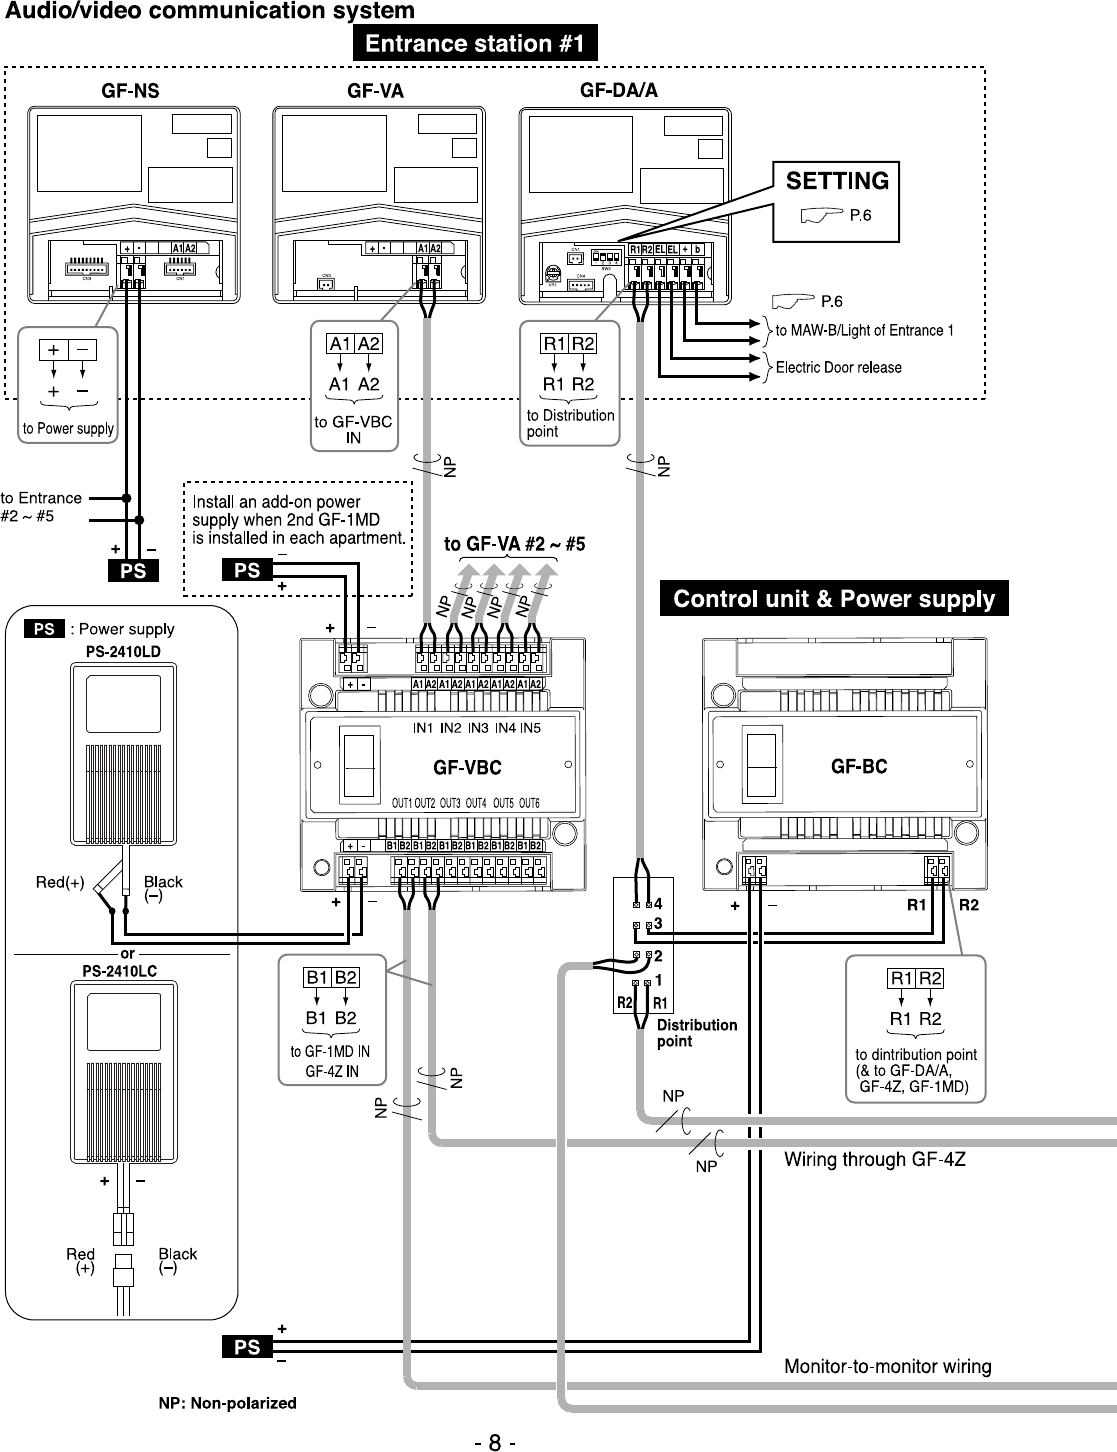 Page 8 of Aiphone Intercom System GF-1MD User Guide